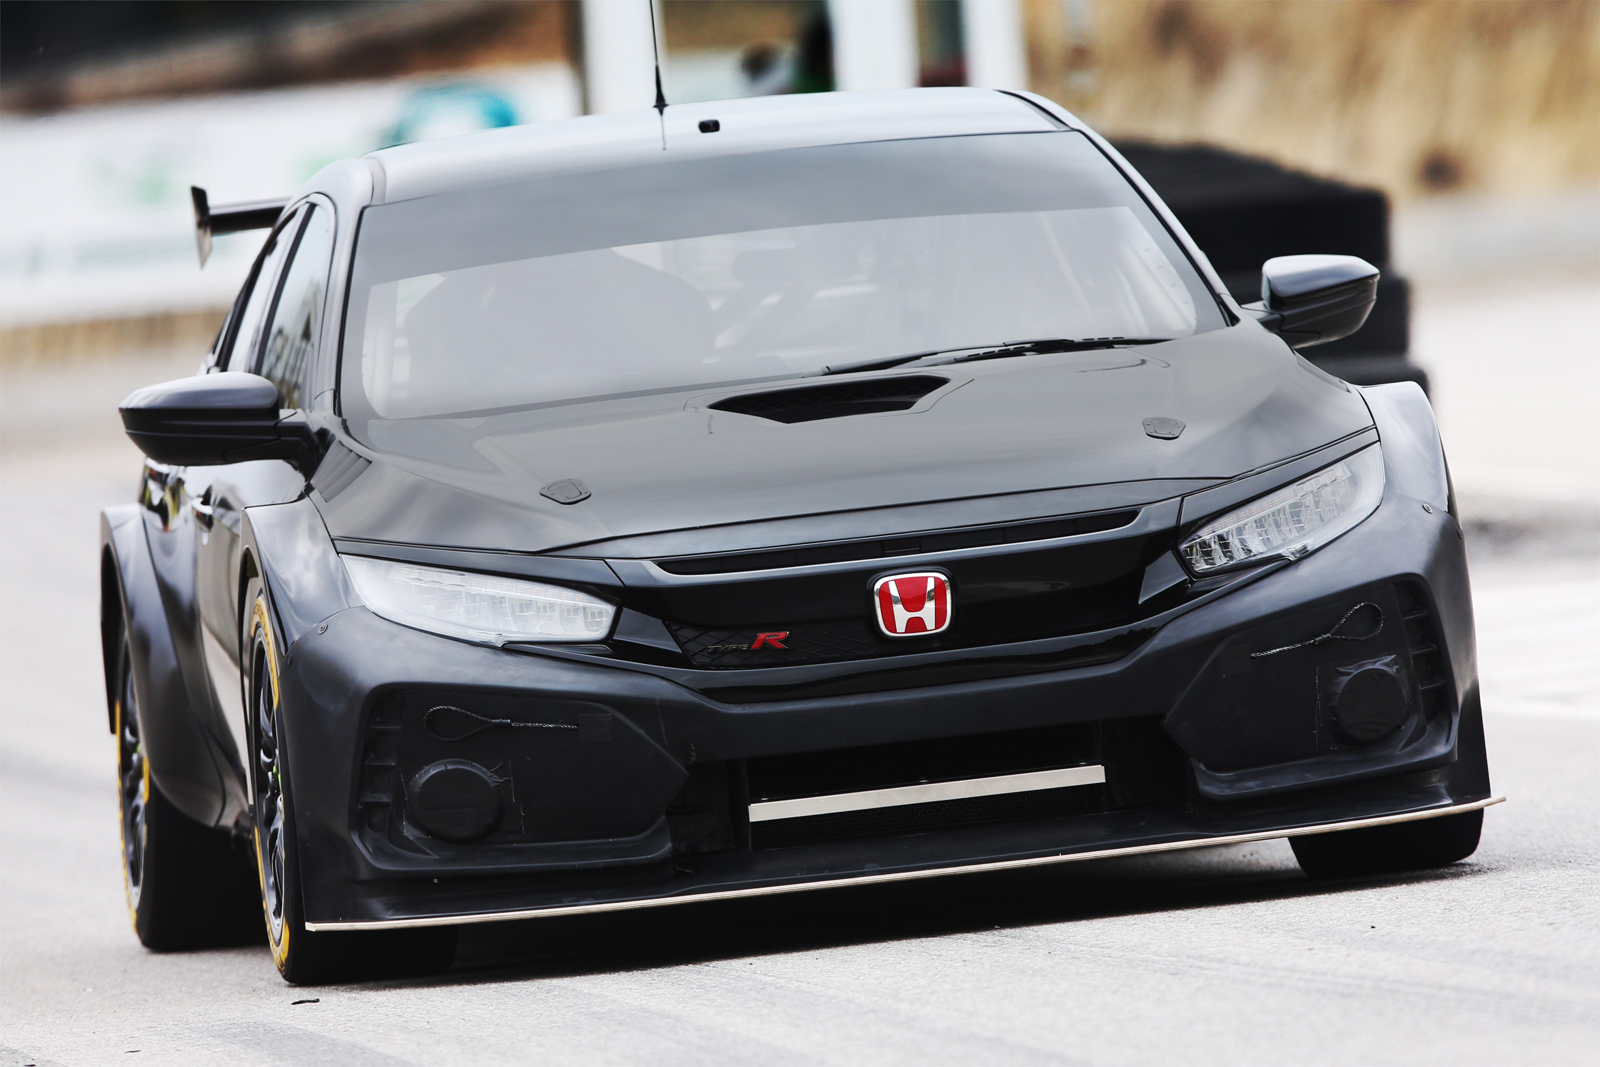 The Honda Civic Type R Makes For A Mean Looking Race Car